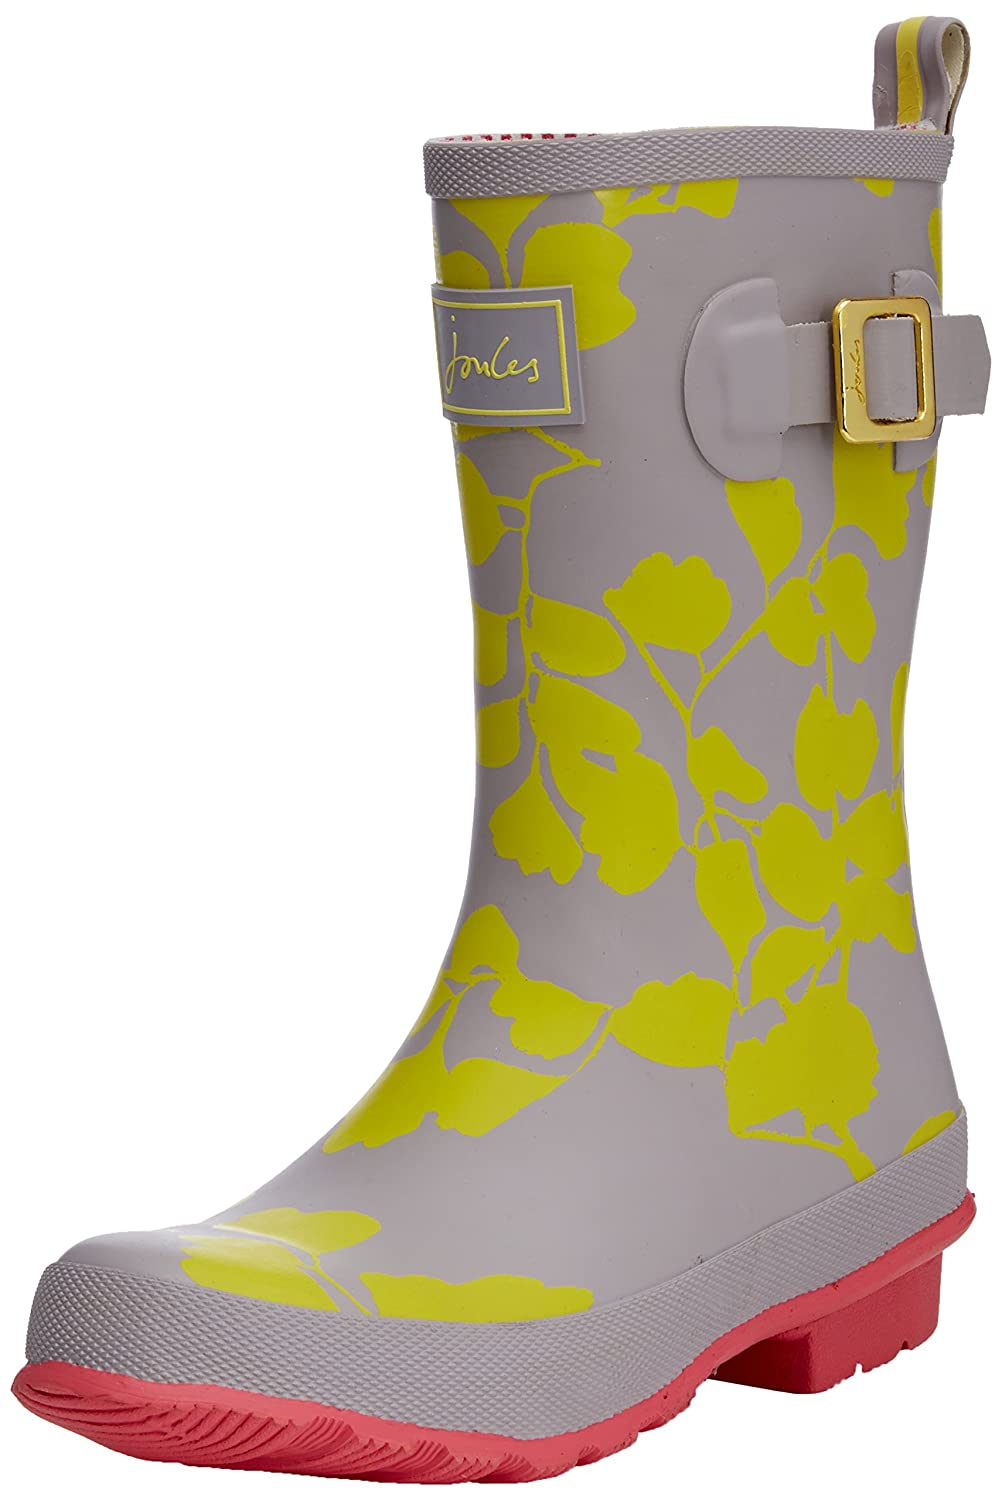 Joules Women's Molly Welly Mid-Calf Boots, Yellow Wild Flower, 3 UK:  Amazon.co.uk: Shoes & Bags